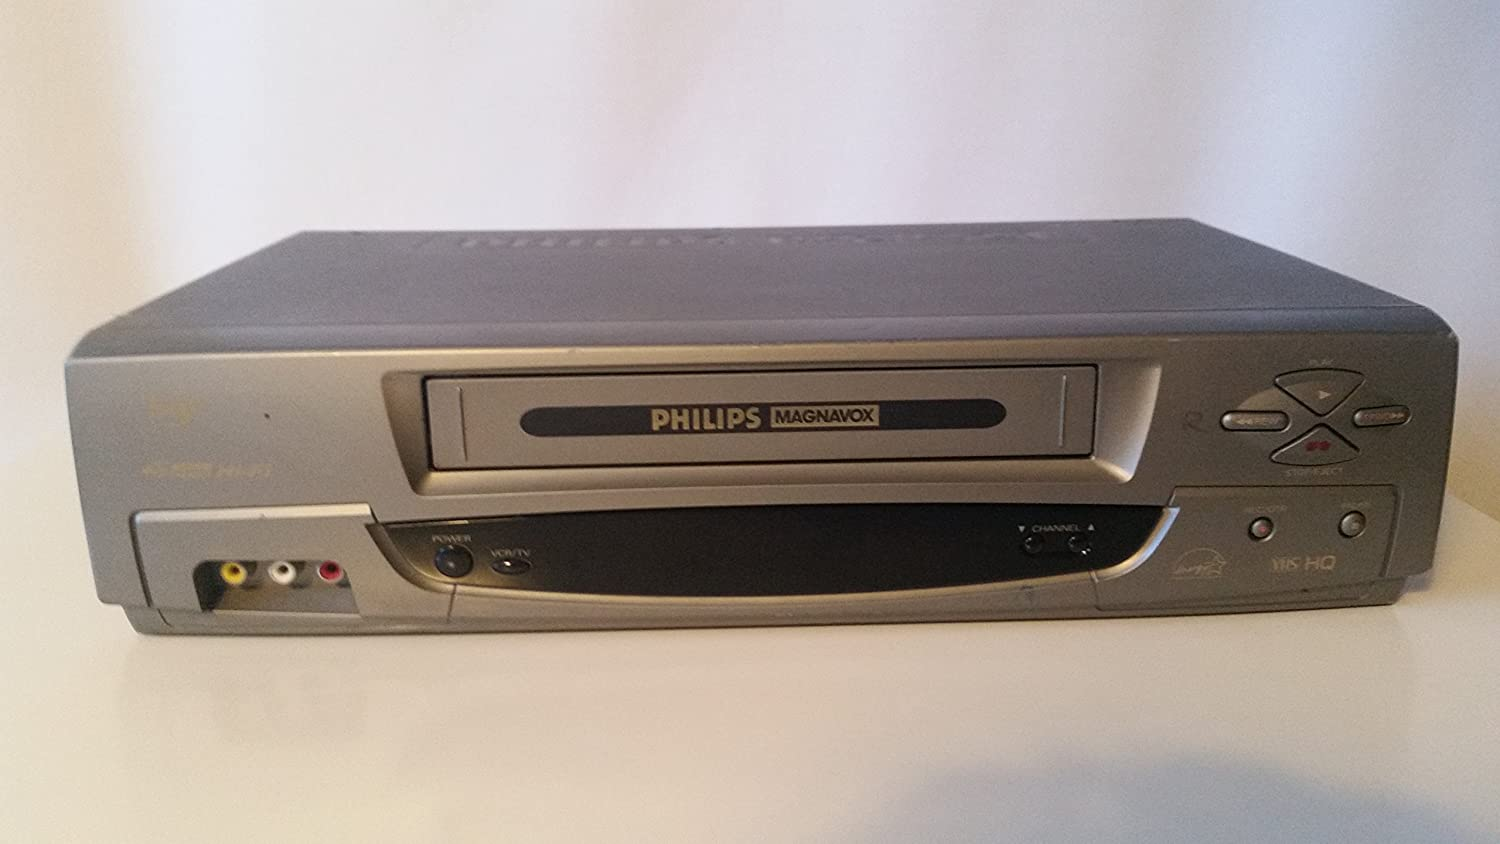 Philips Magnavox VRA431AT24 Video Cassette Recorder Player VCR 4 ...